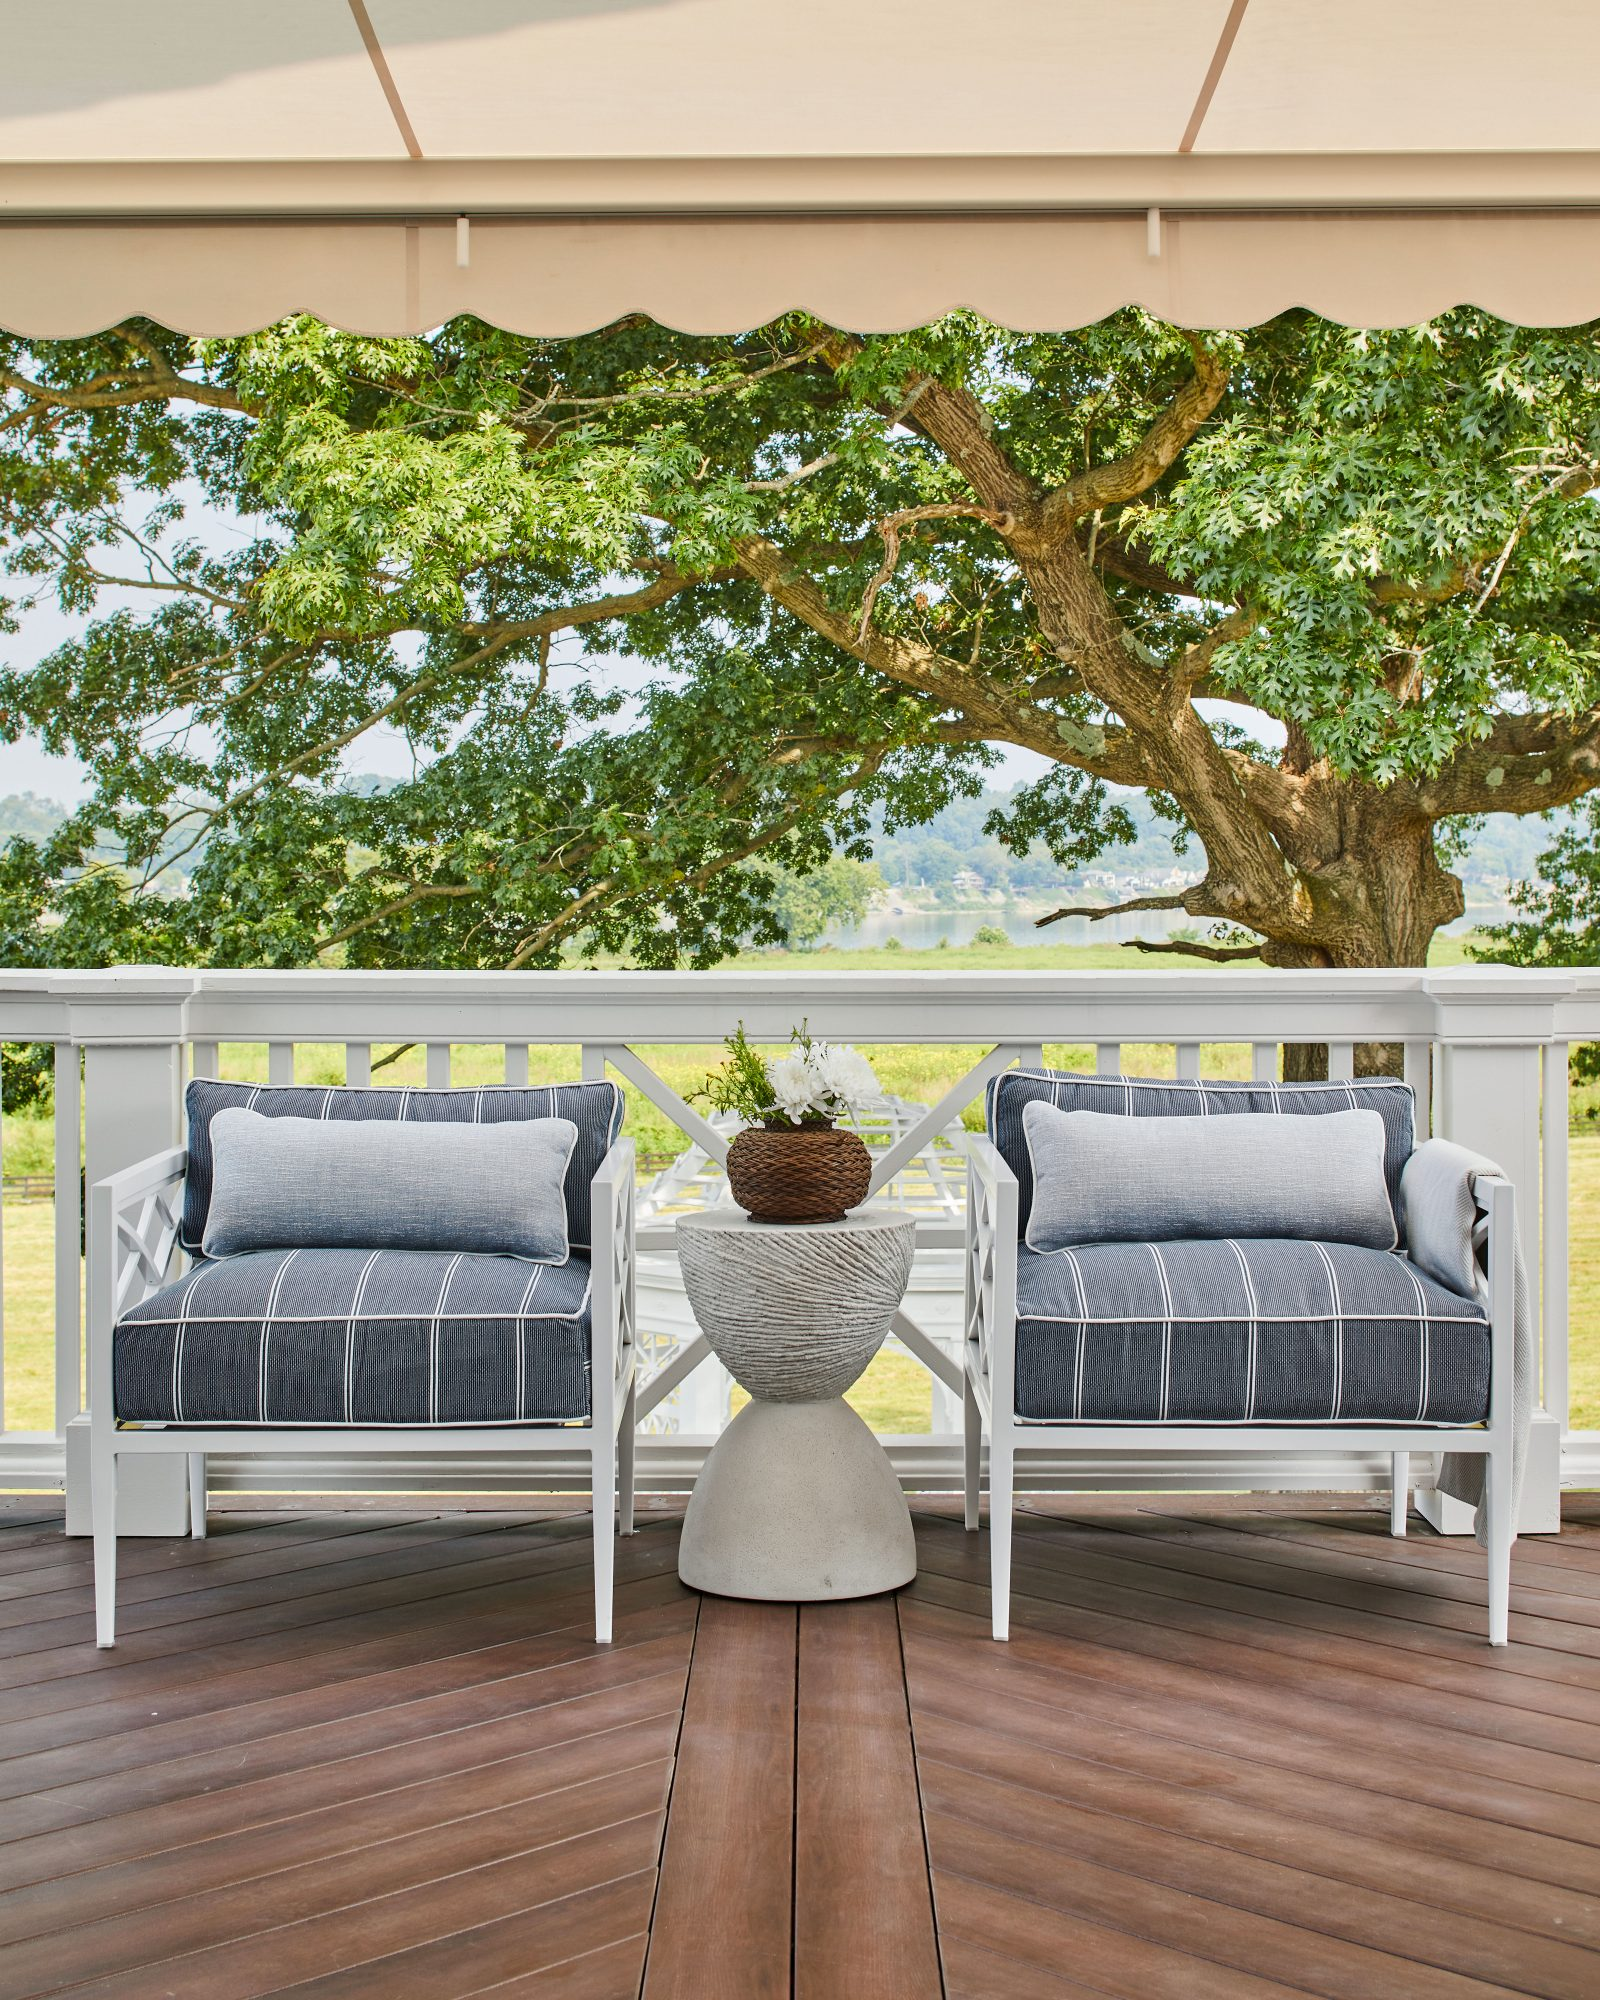 2021 Idea House Morning Deck Seating